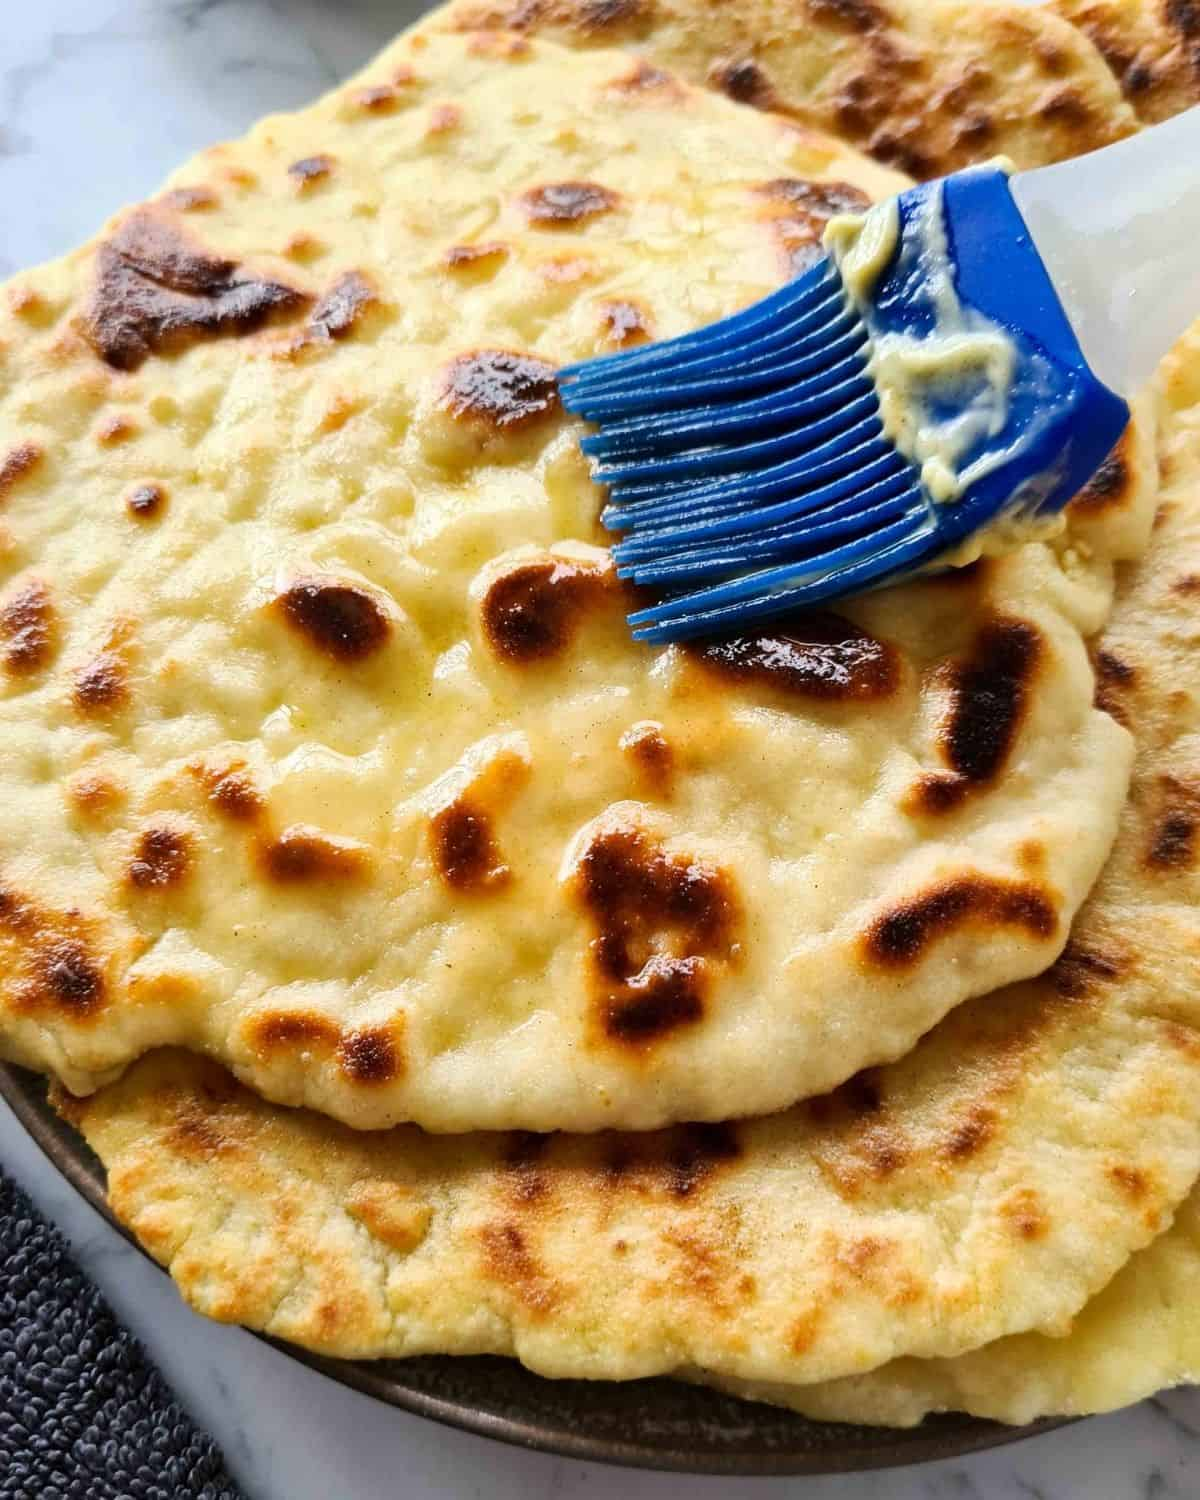 Close up of butter being brushed onto a piece of freshly cooked naan bread with a blue brush.